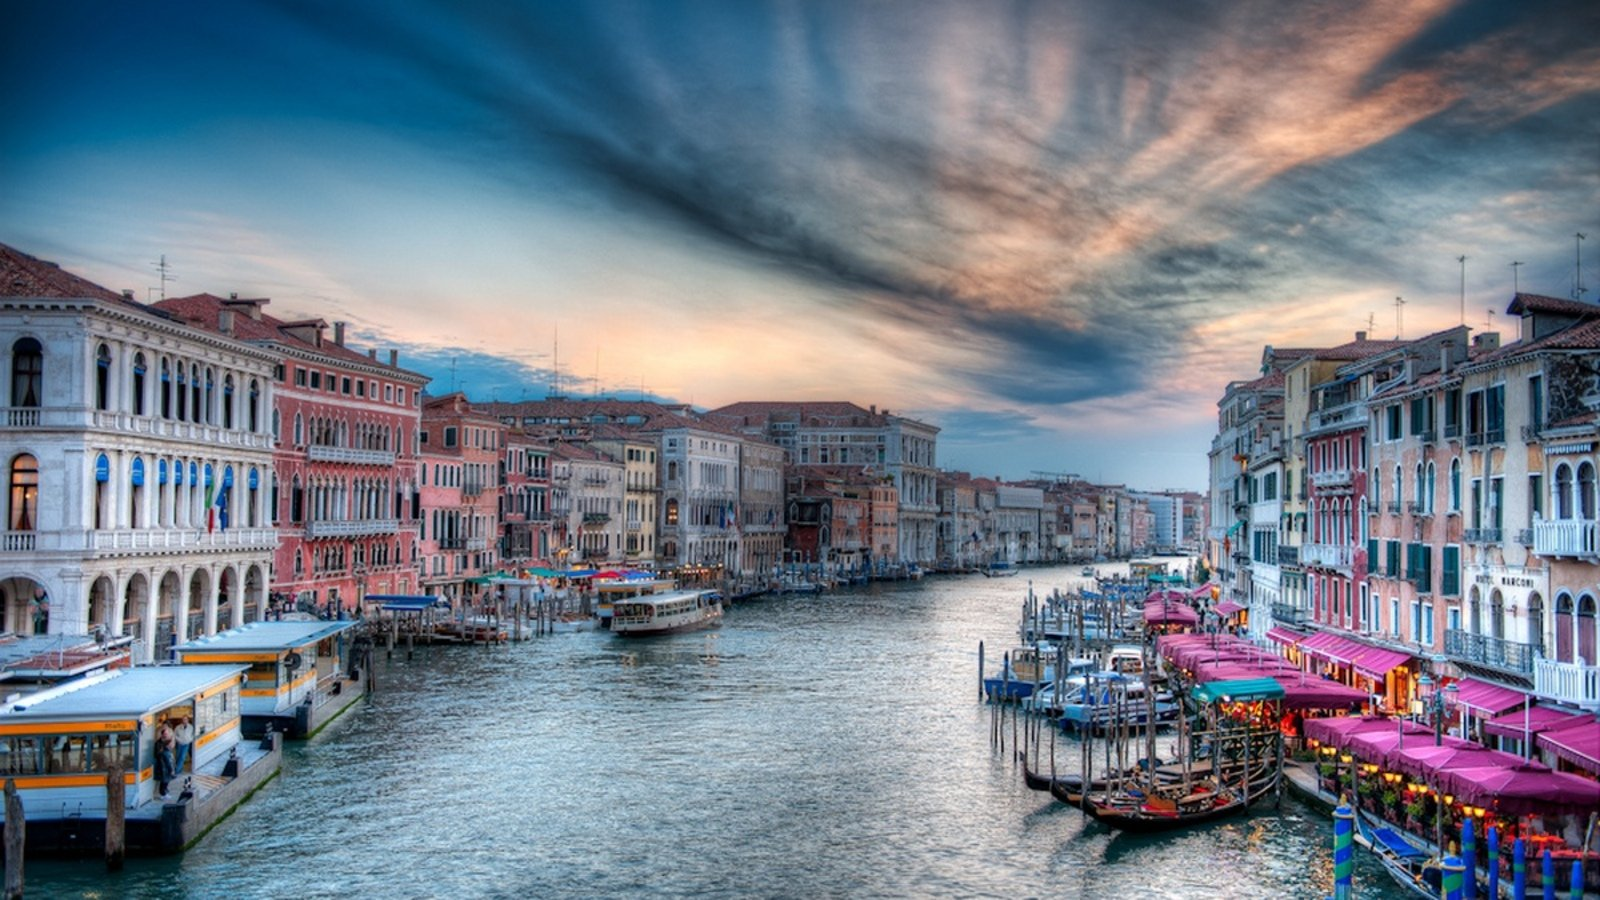 Man Made - Venice  Italy Building HDR Wallpaper